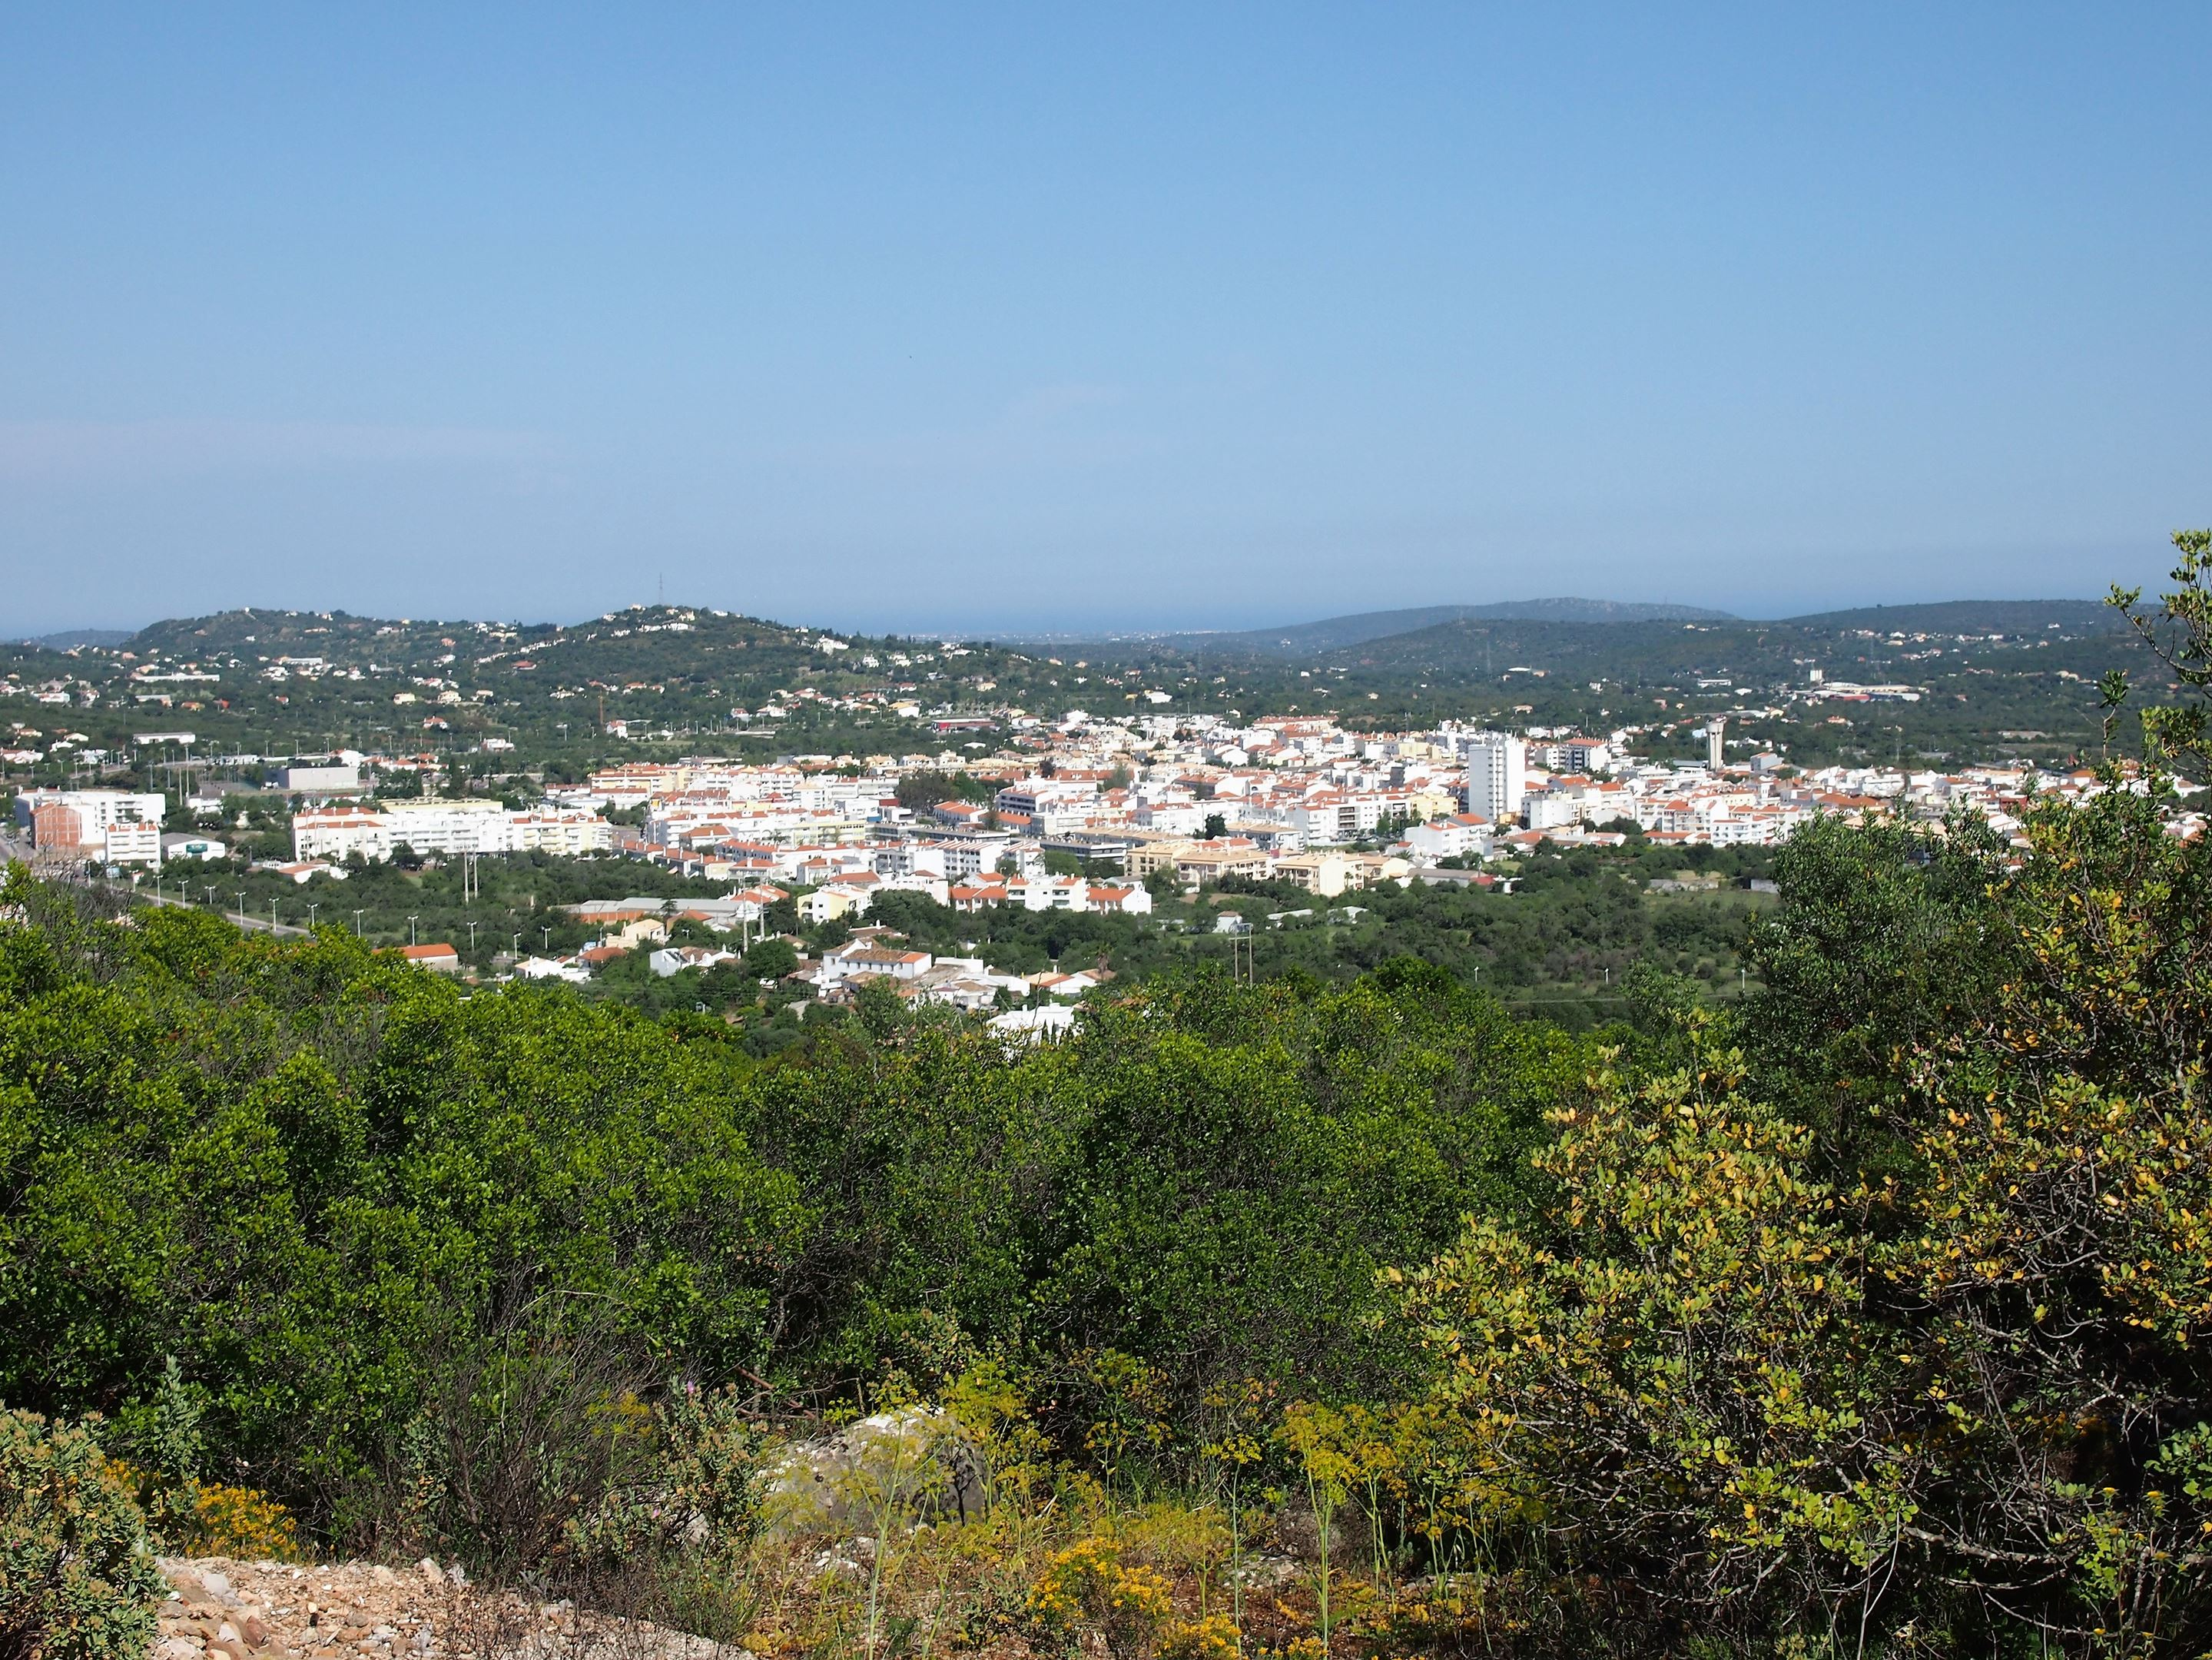 Views of the town of São Brás de Alportel, from Miradouro do Alto da Arroteia